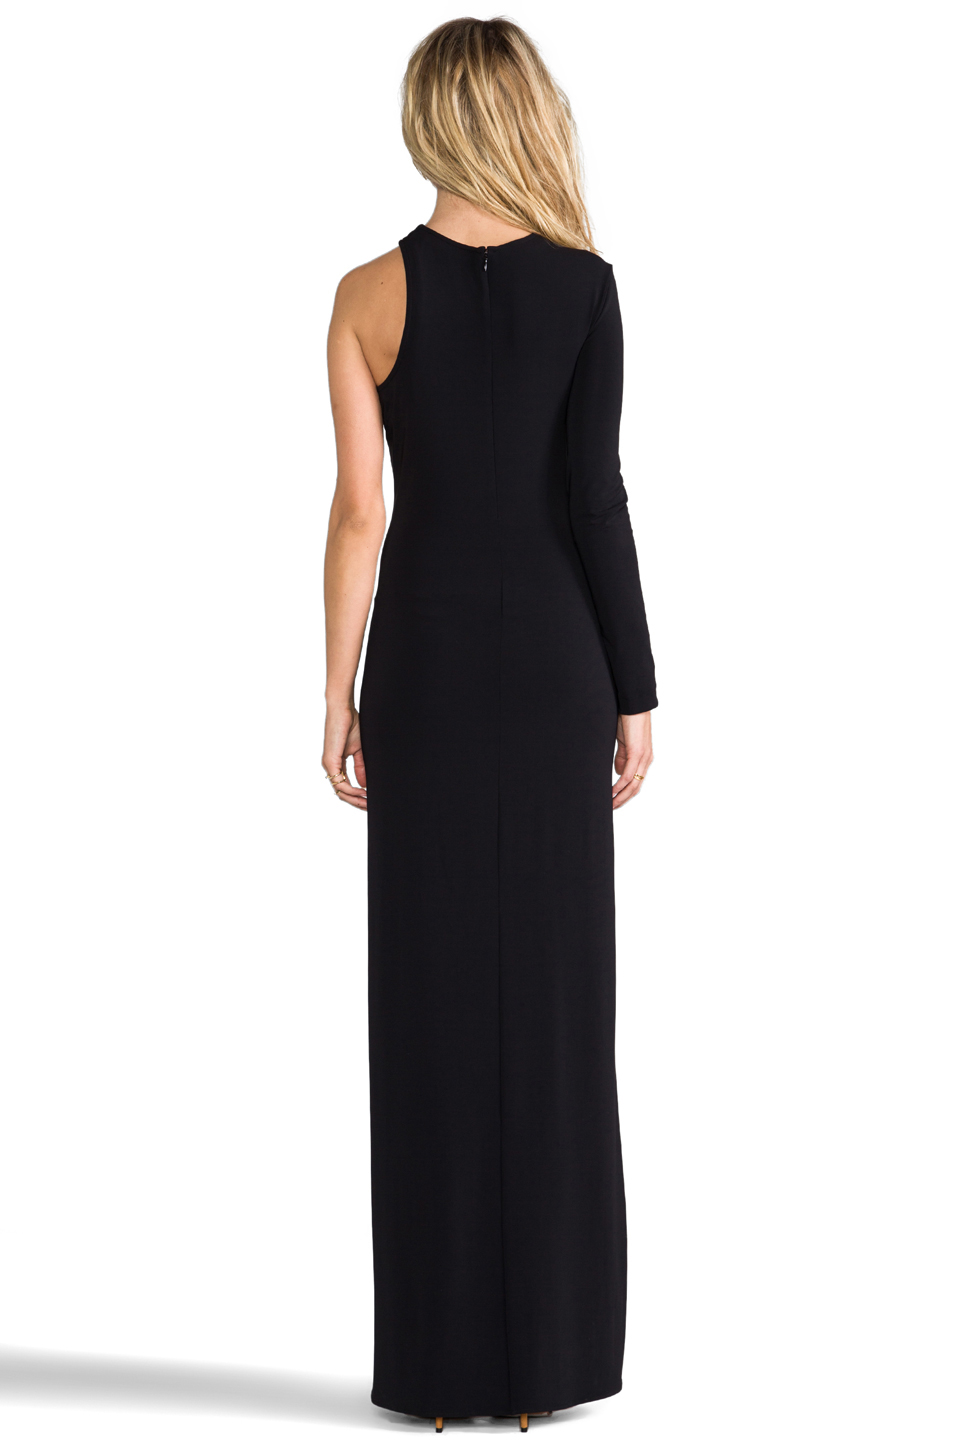 Cut25 by Yigal Azrouel One Shoulder Long Sleeve Gown in Jet